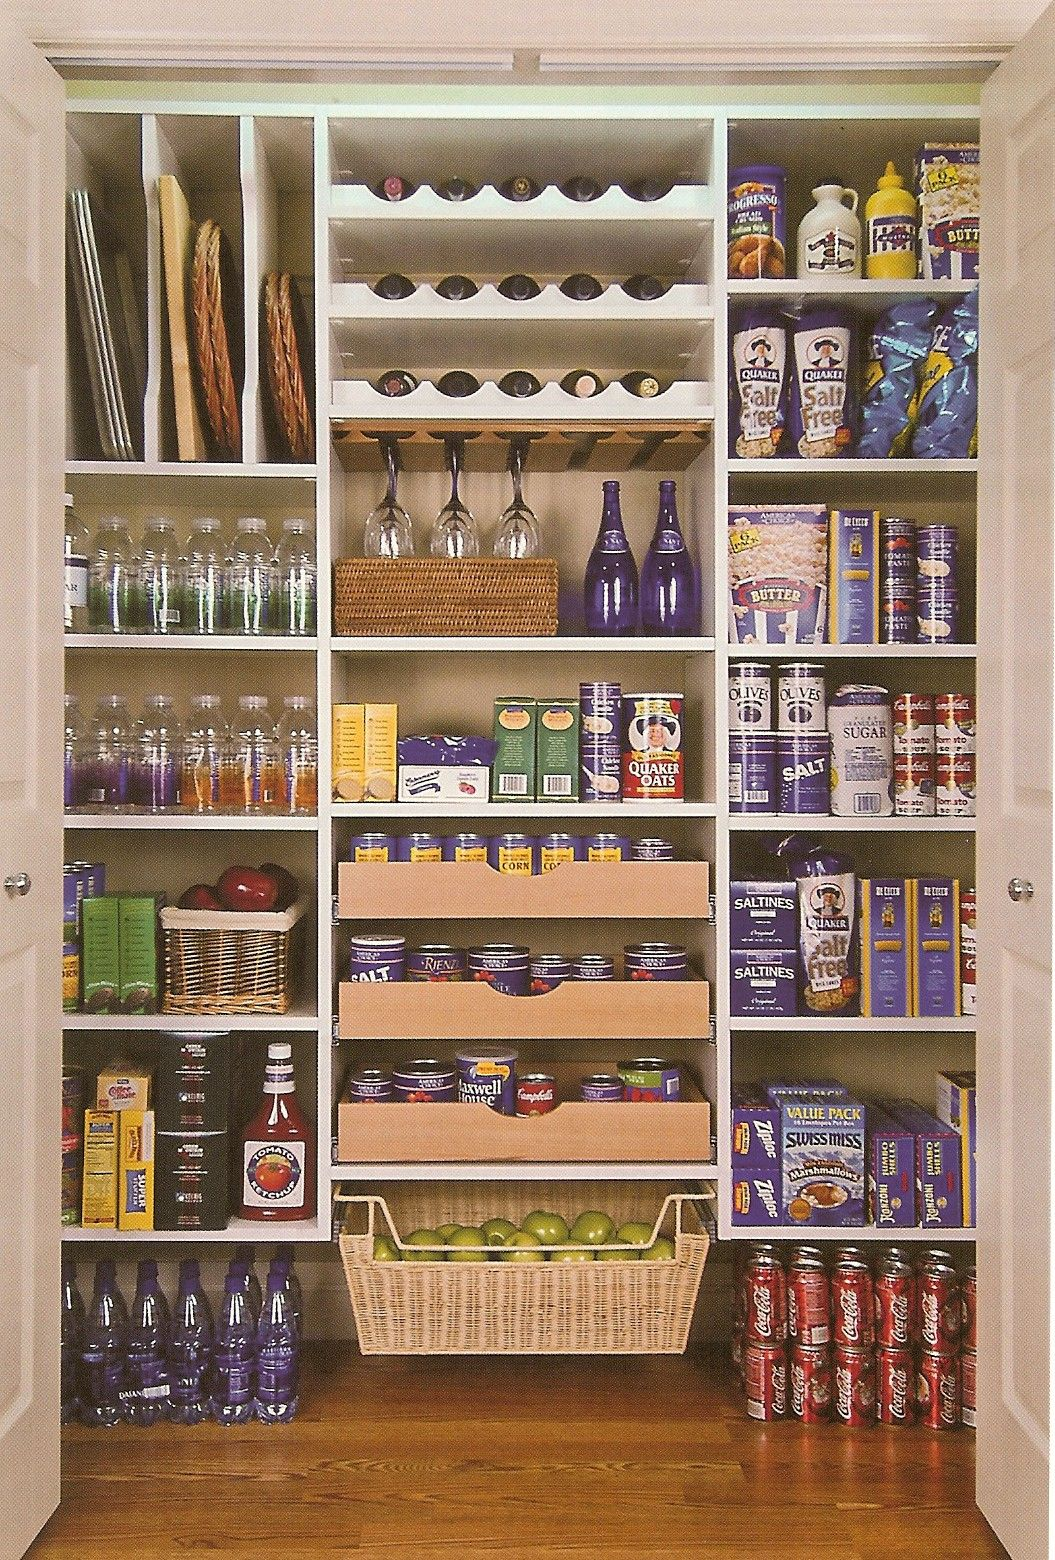 How to Organize Kitchen Cabinets | Pinterest | Küche, Speisekammer ...